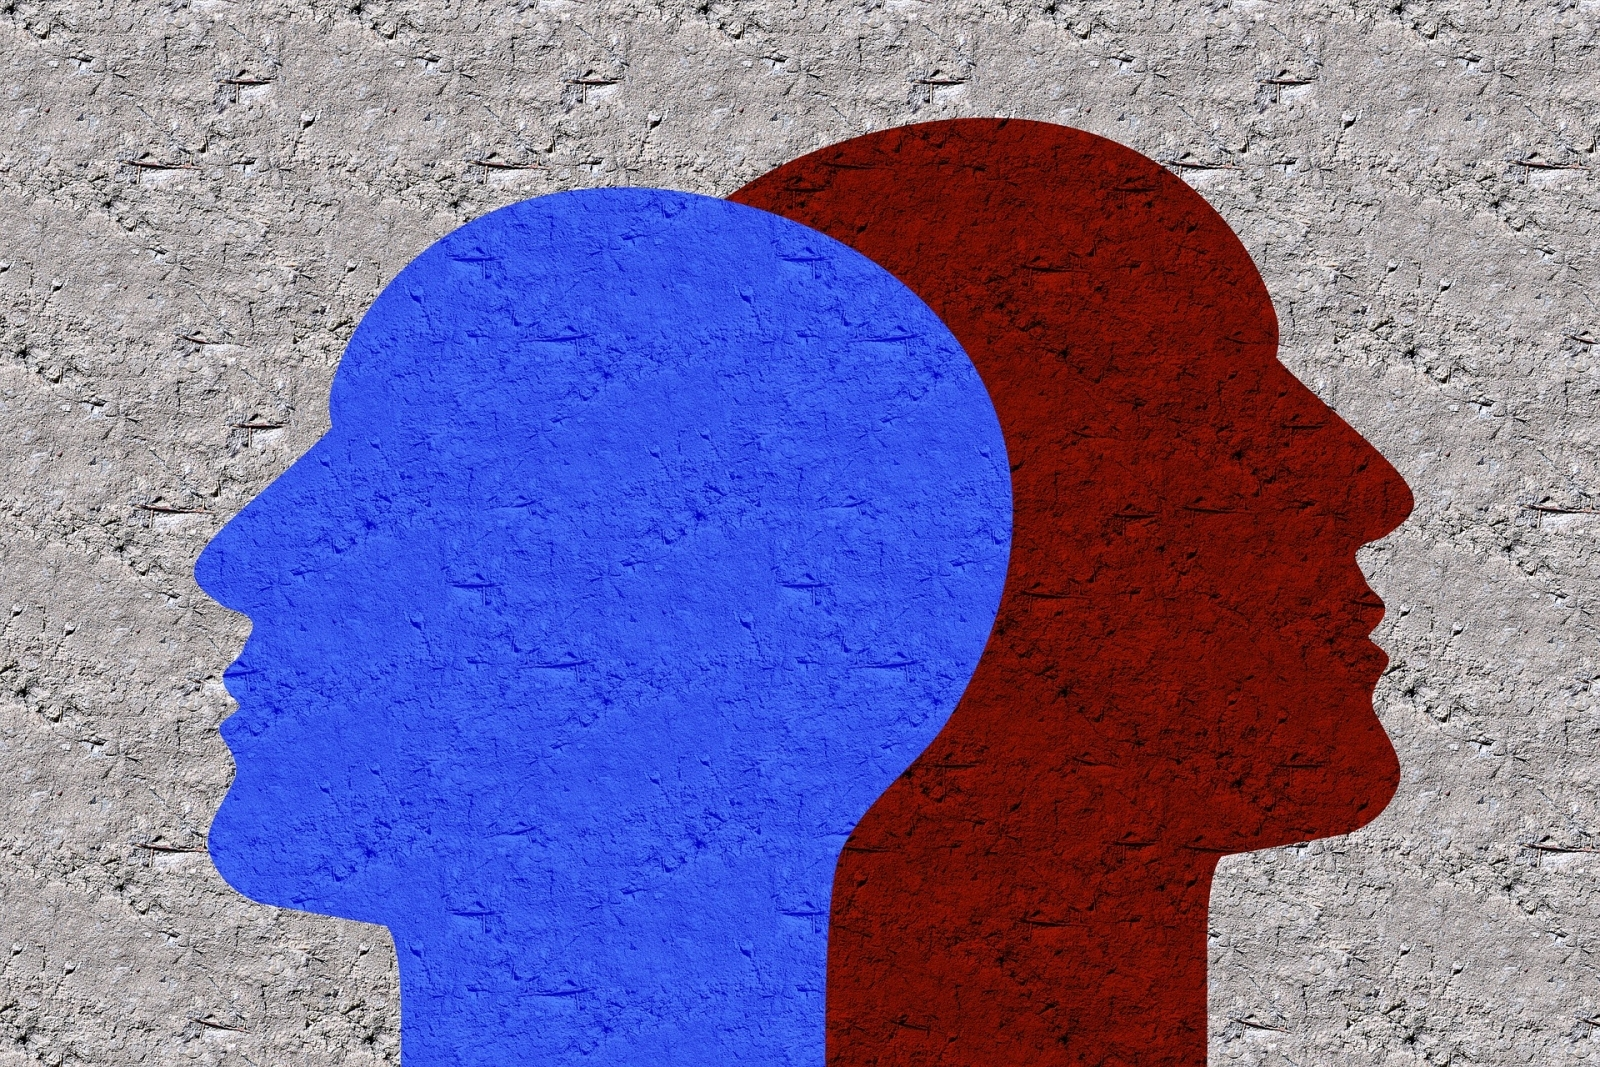 Personality and motivation